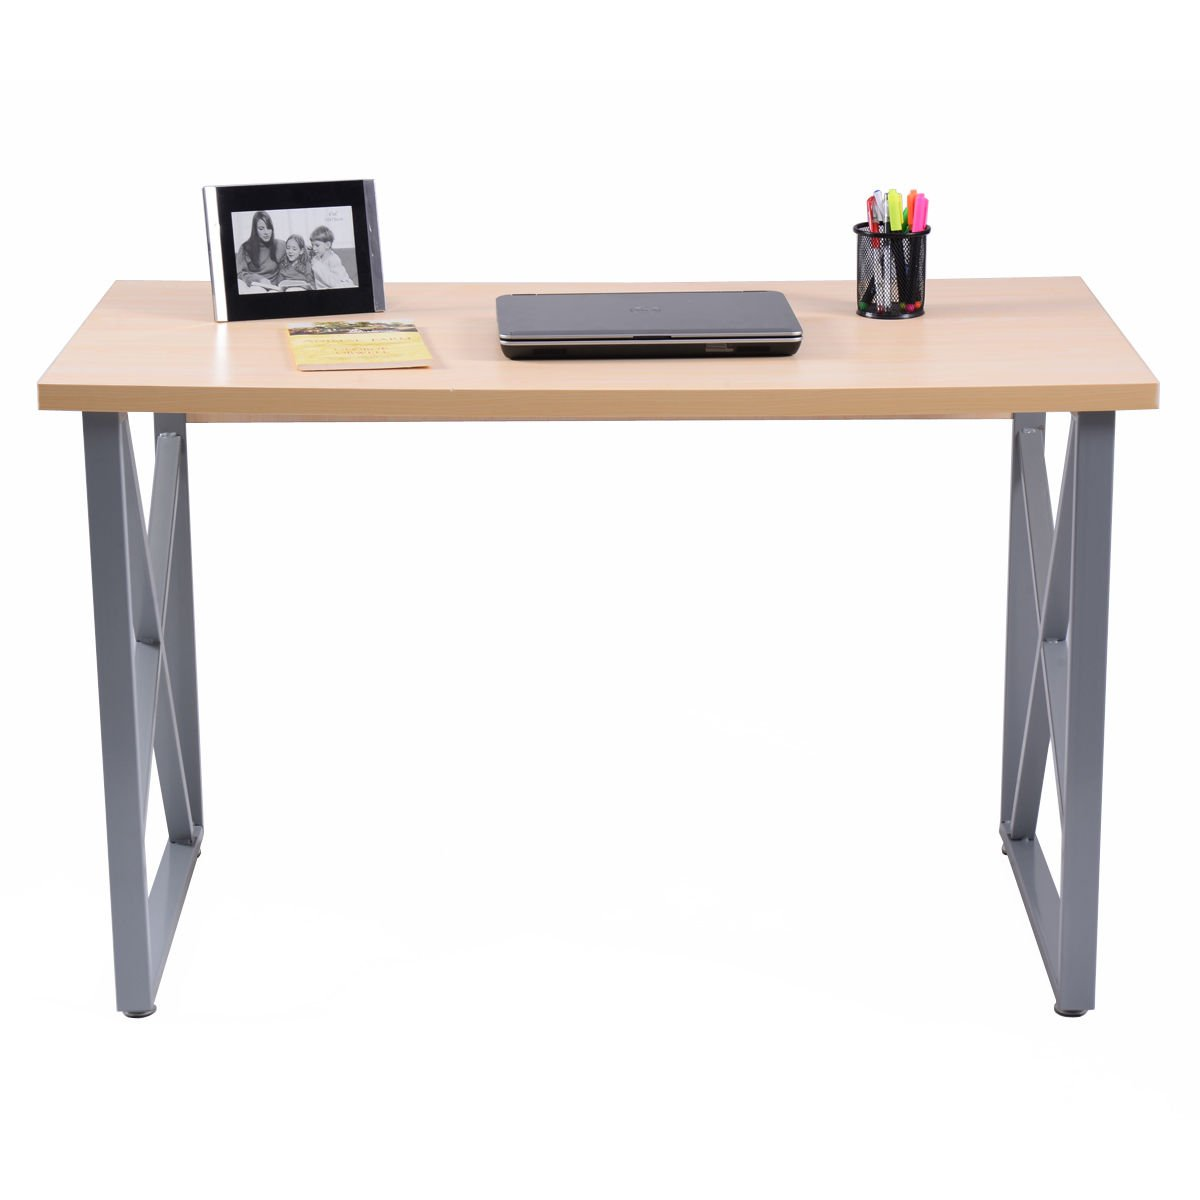 amazon home office furniture. home office computer desk furniture. amazon.com: chefjoy pc laptop table amazon furniture e